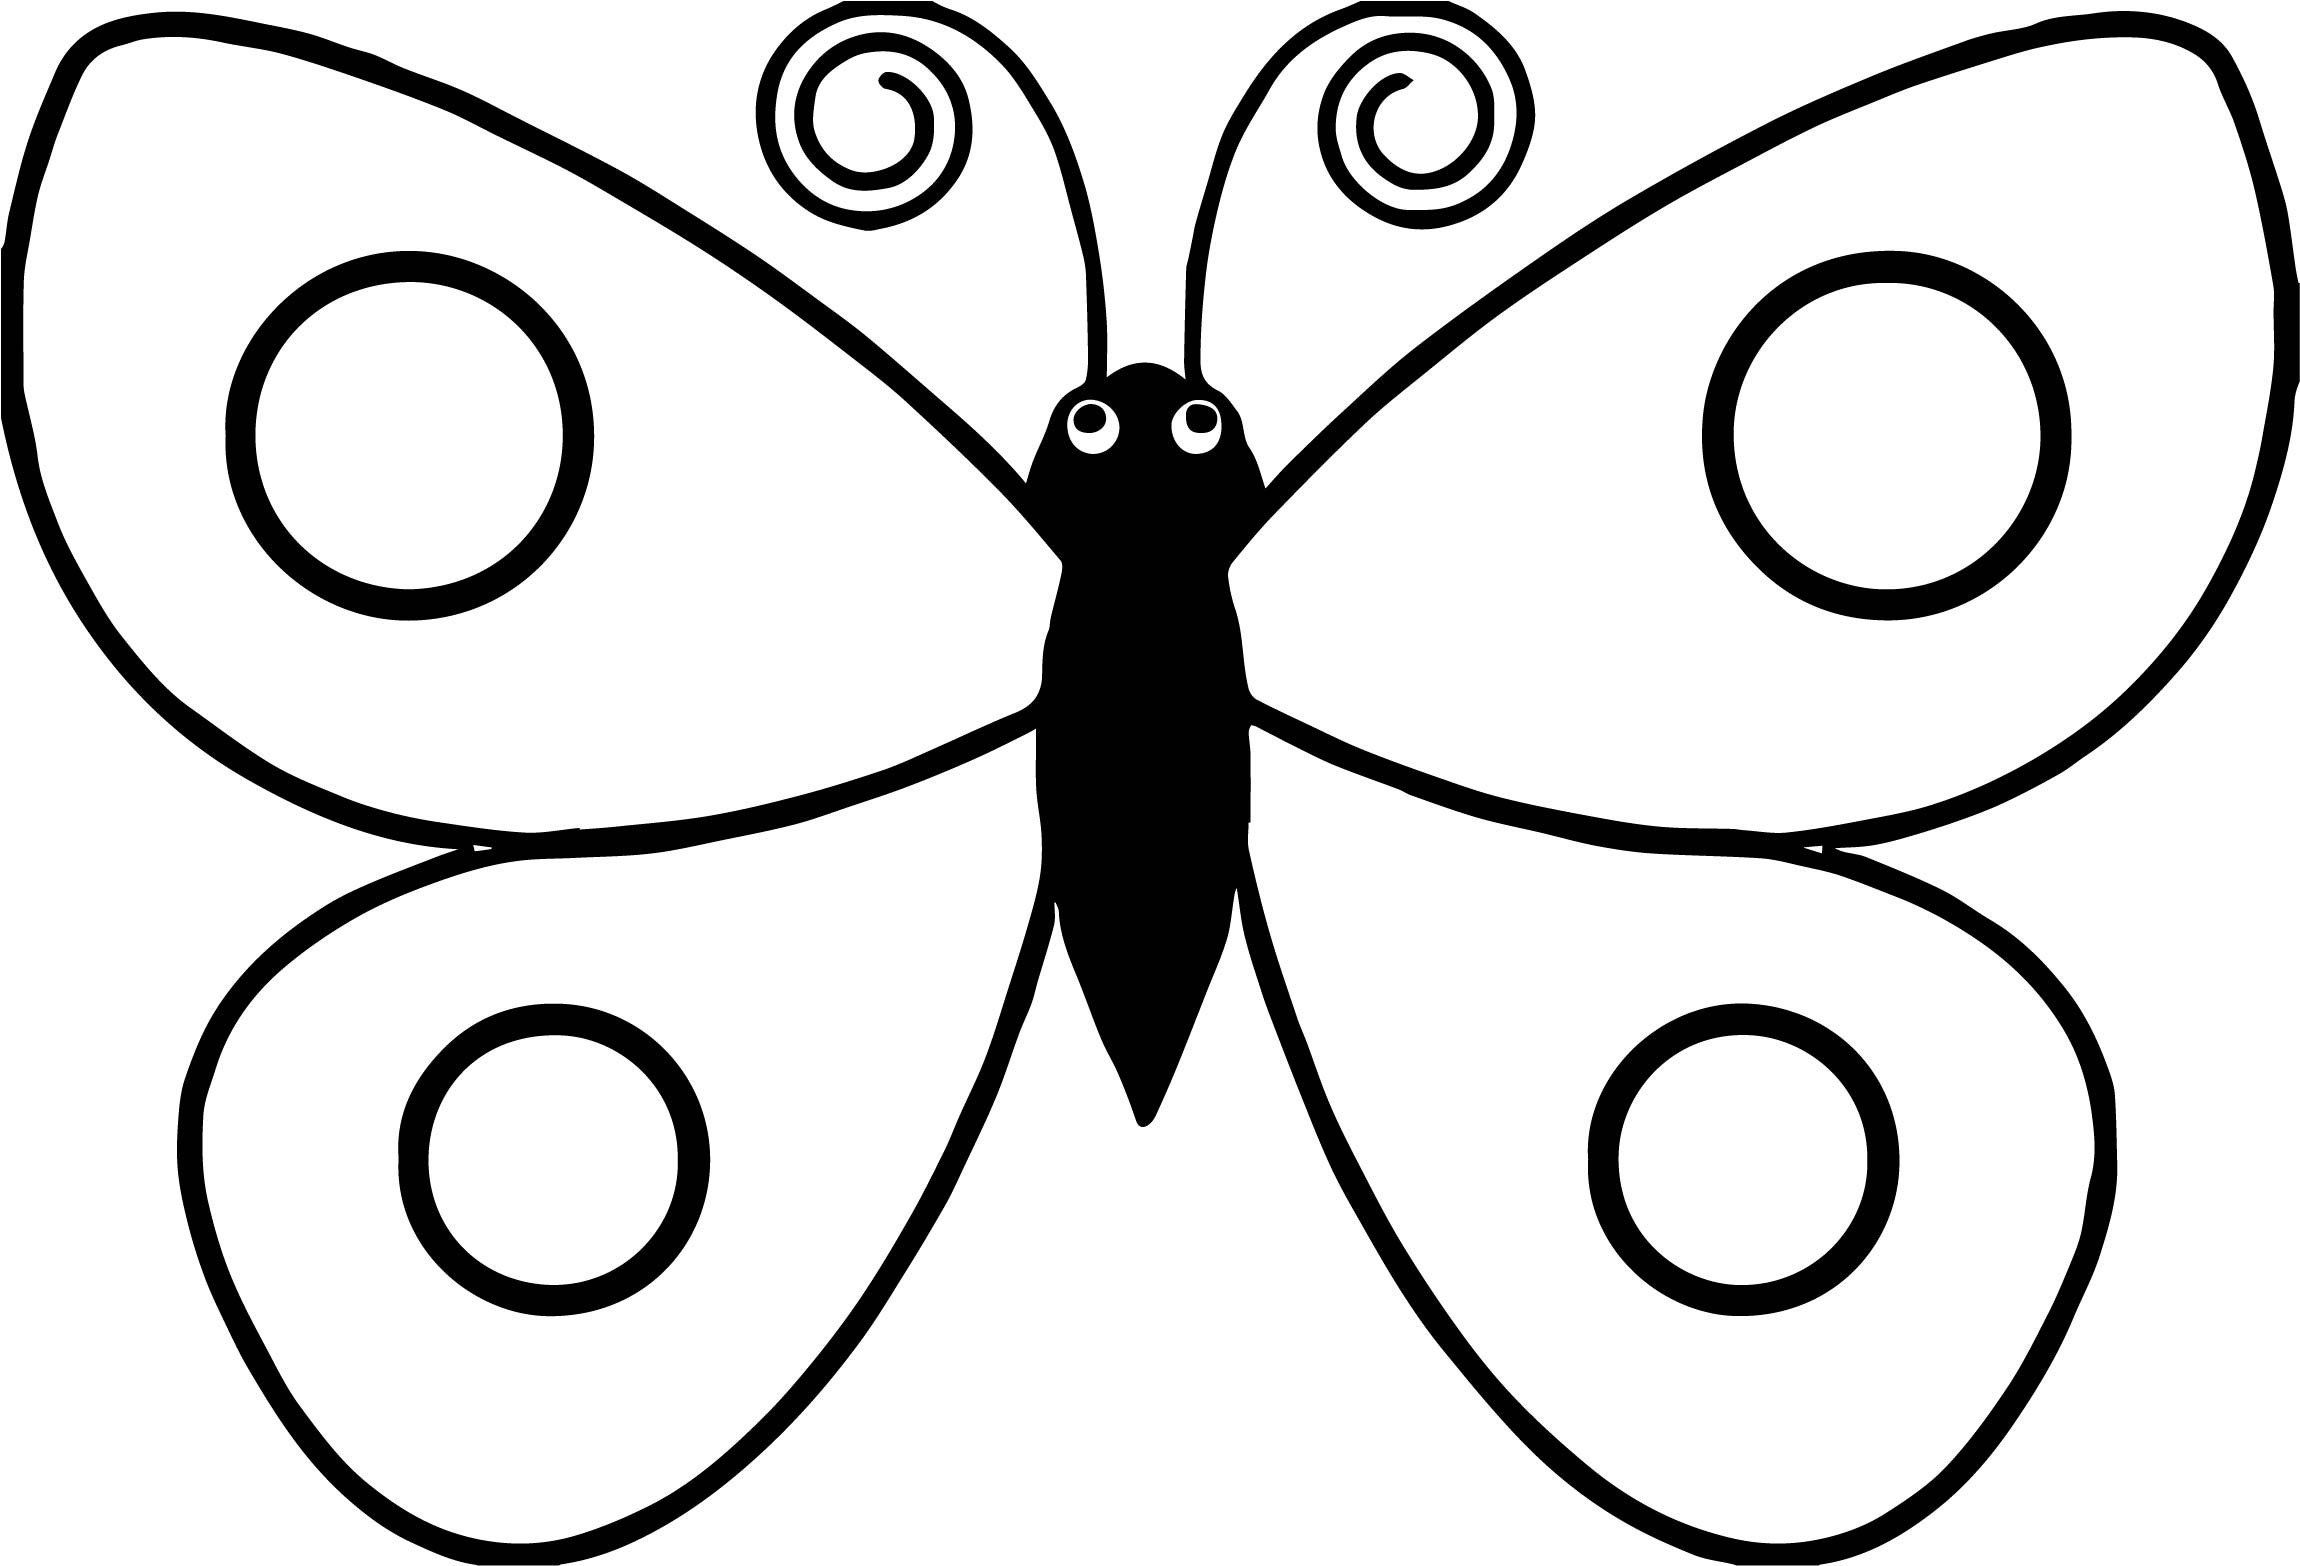 Monarch Butterfly Coloring Page Awesome Coloring Book Butterfly Coloring Pages Butterfly Coloring Page Coloring Pages Mermaid Coloring Pages [ 1566 x 2300 Pixel ]